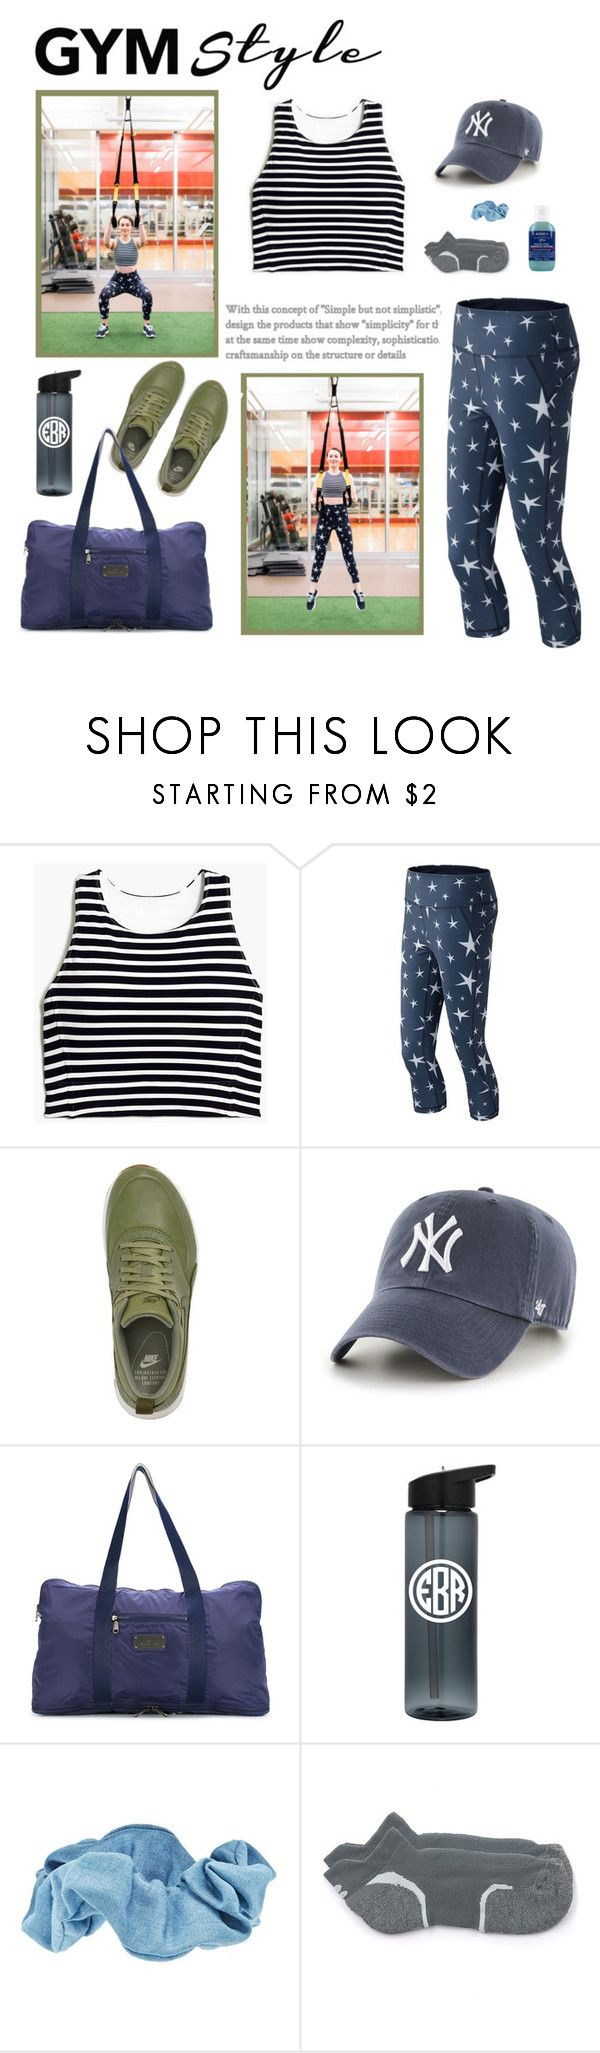 """""""gym style"""" by redressingbloggers ❤ liked on Polyvore featuring New Balance, NIKE, '47 Brand, adidas, Forever 21, Sweaty Betty and Kiehl's"""